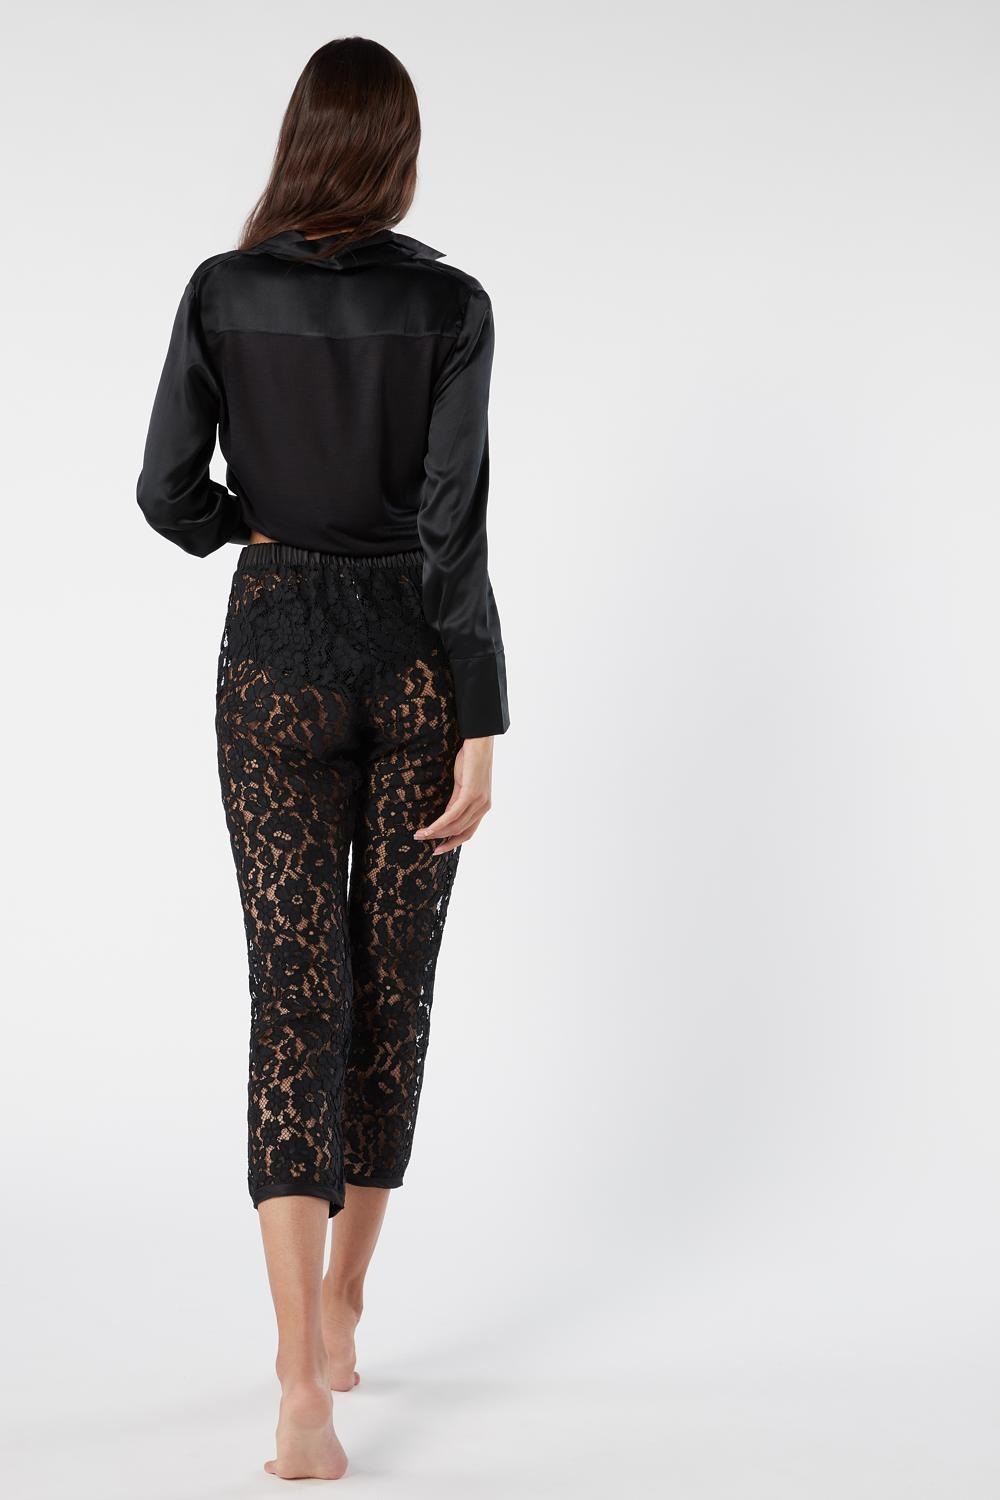 Lace Knee-High Pants